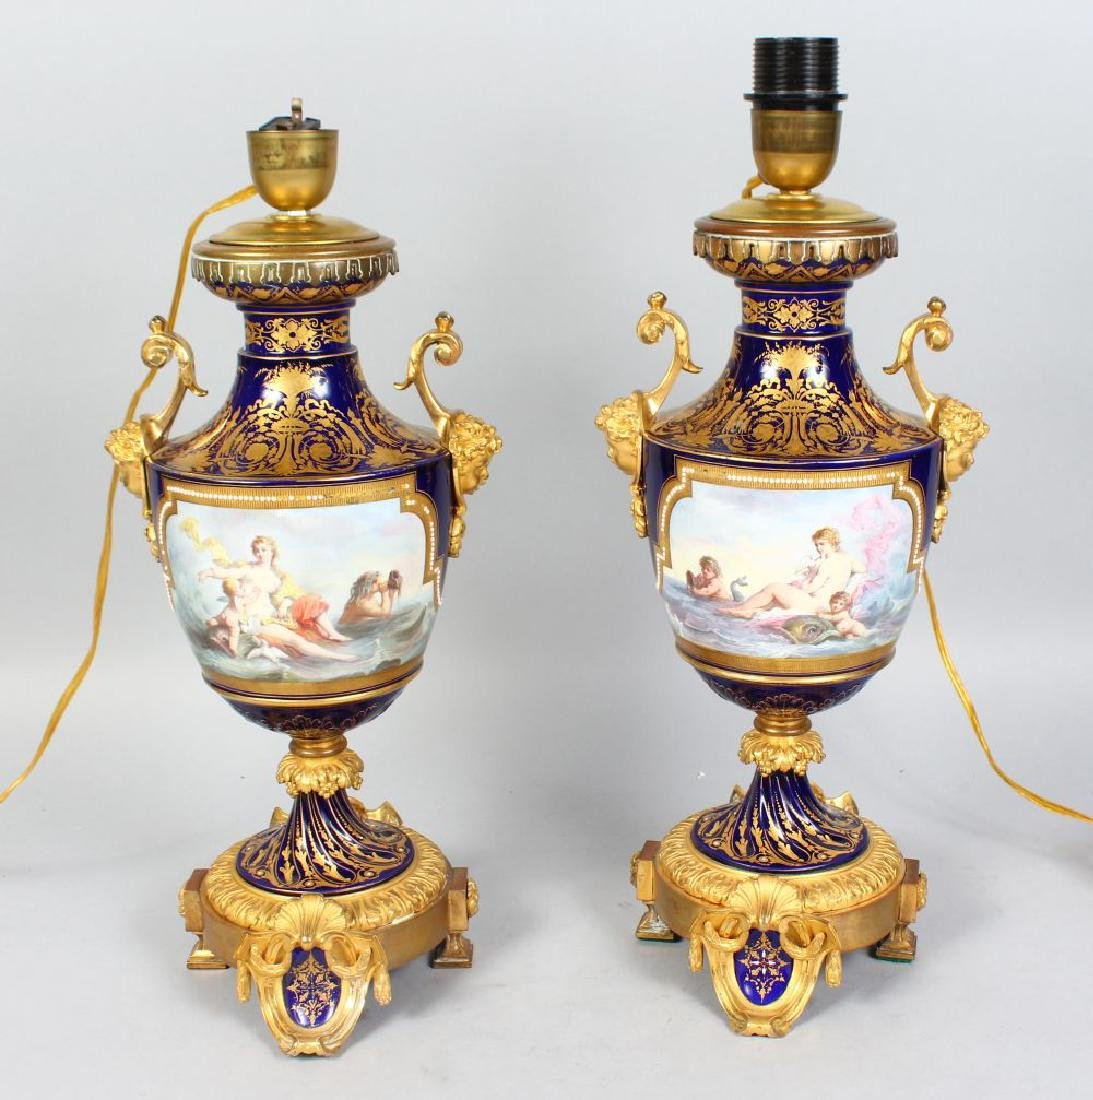 A SUPERB PAIR OF SEVRES PORCELAIN URN SHAPED LAMPS with